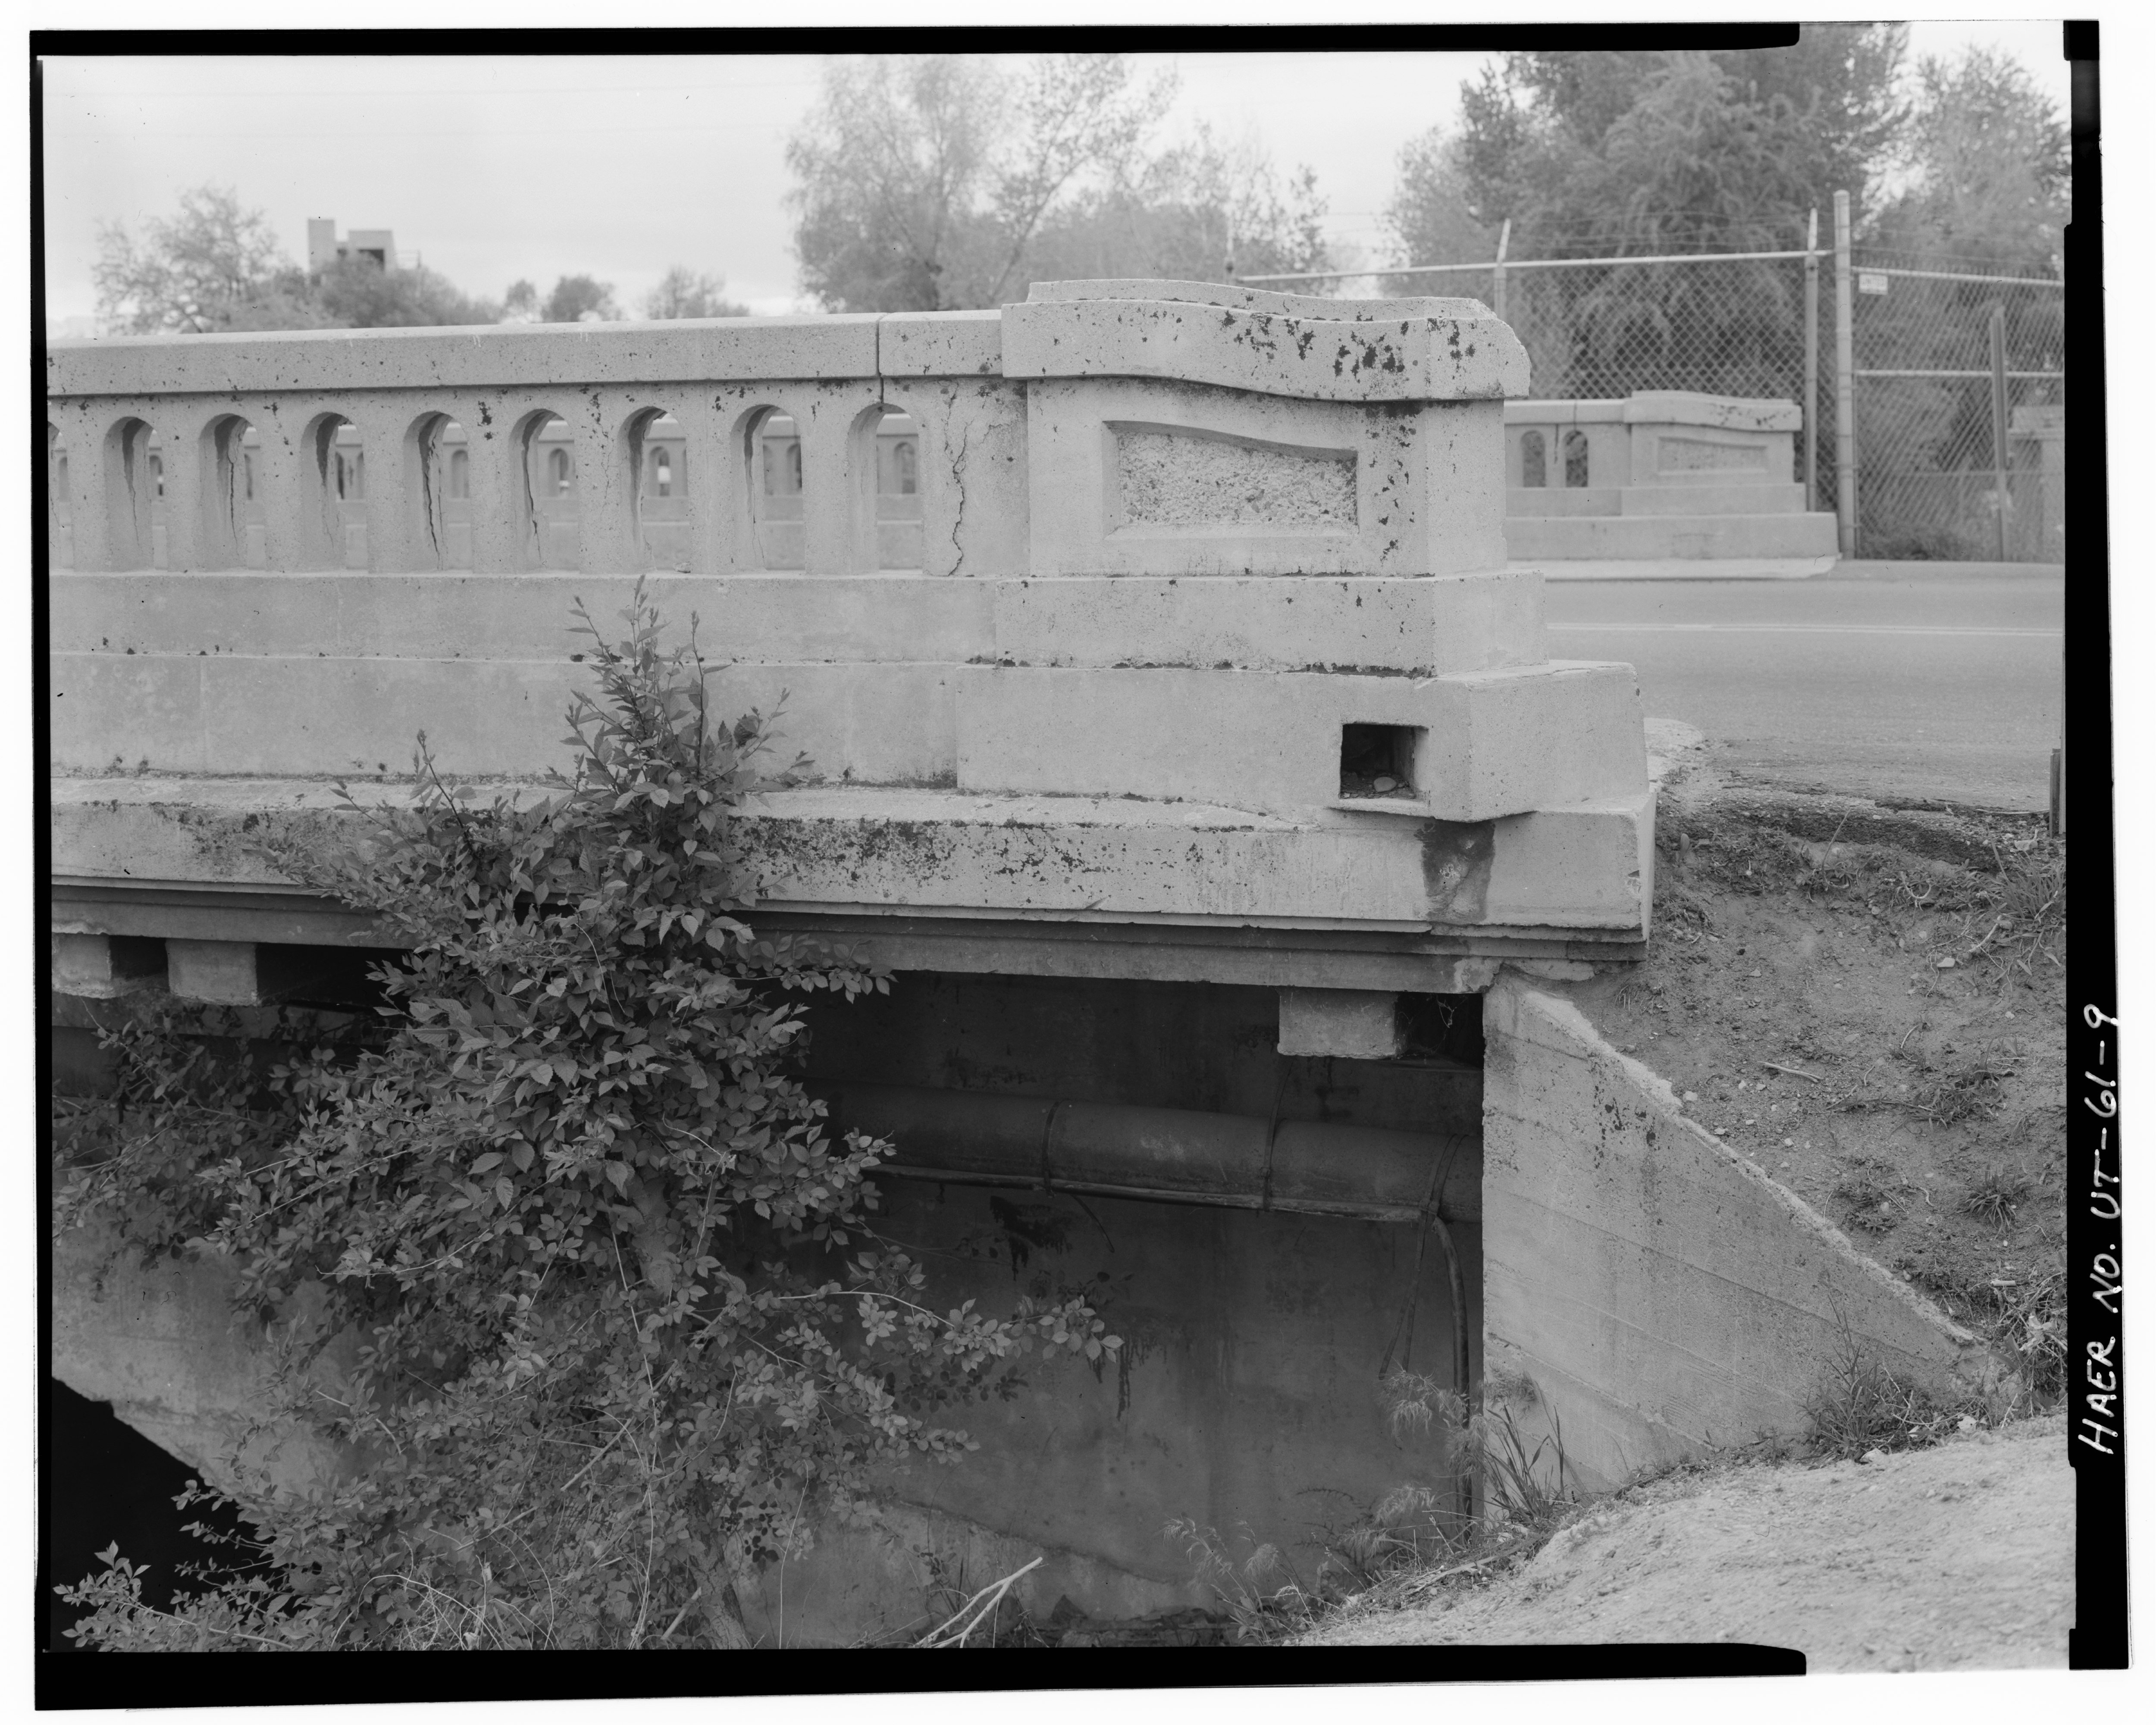 File:VIEW SHOWING NORTH SIDE OF BRIDGE, LOOKING FROM